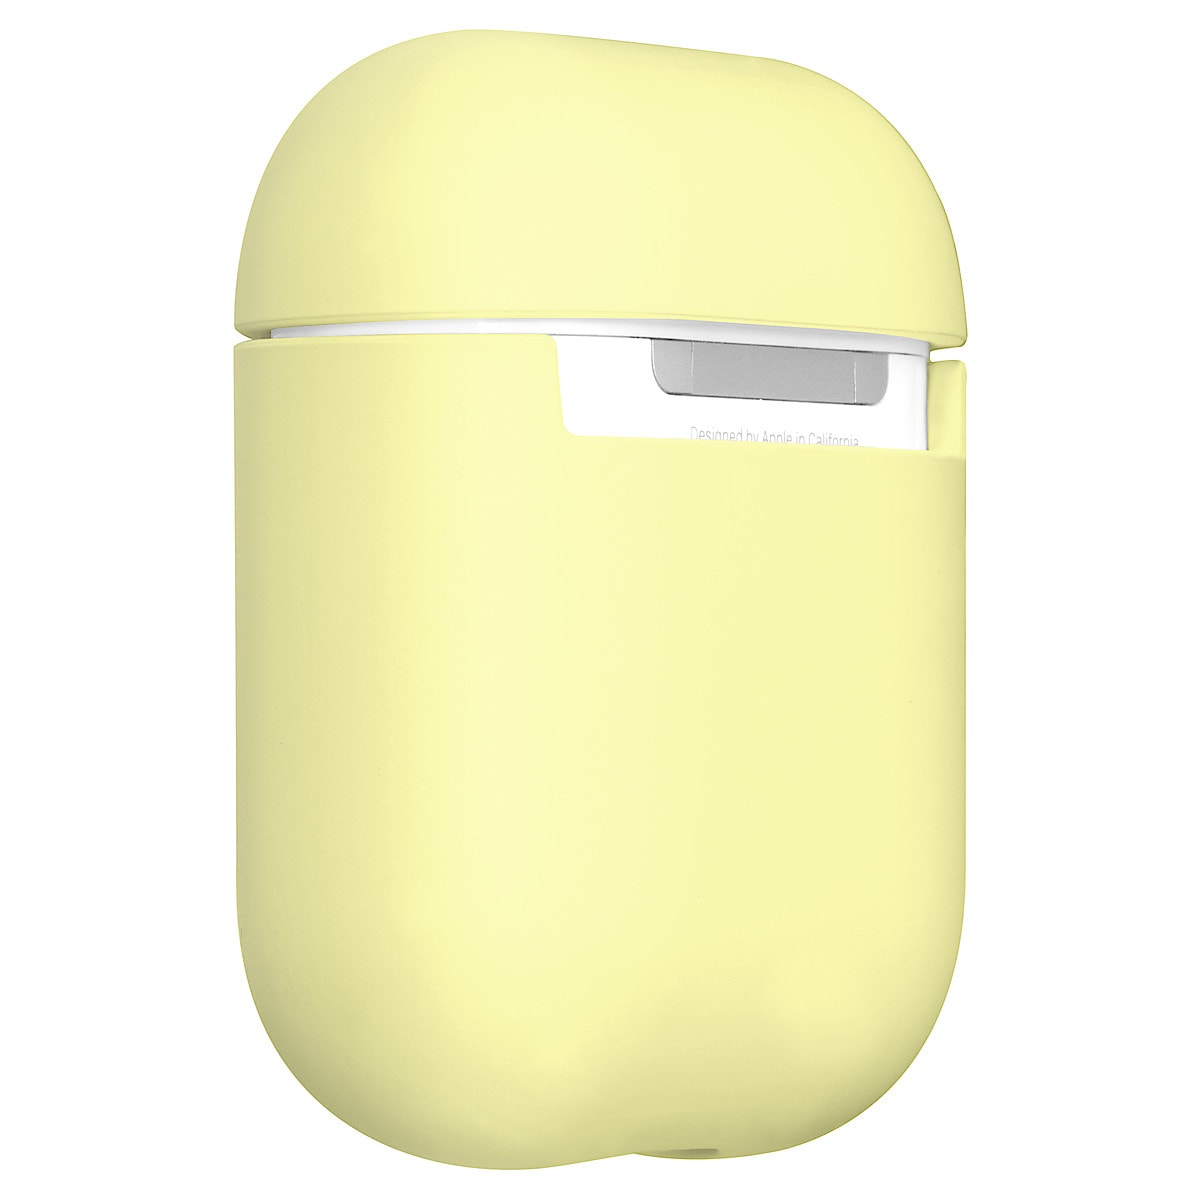 Laut Huex Pastels futteral for AirPods